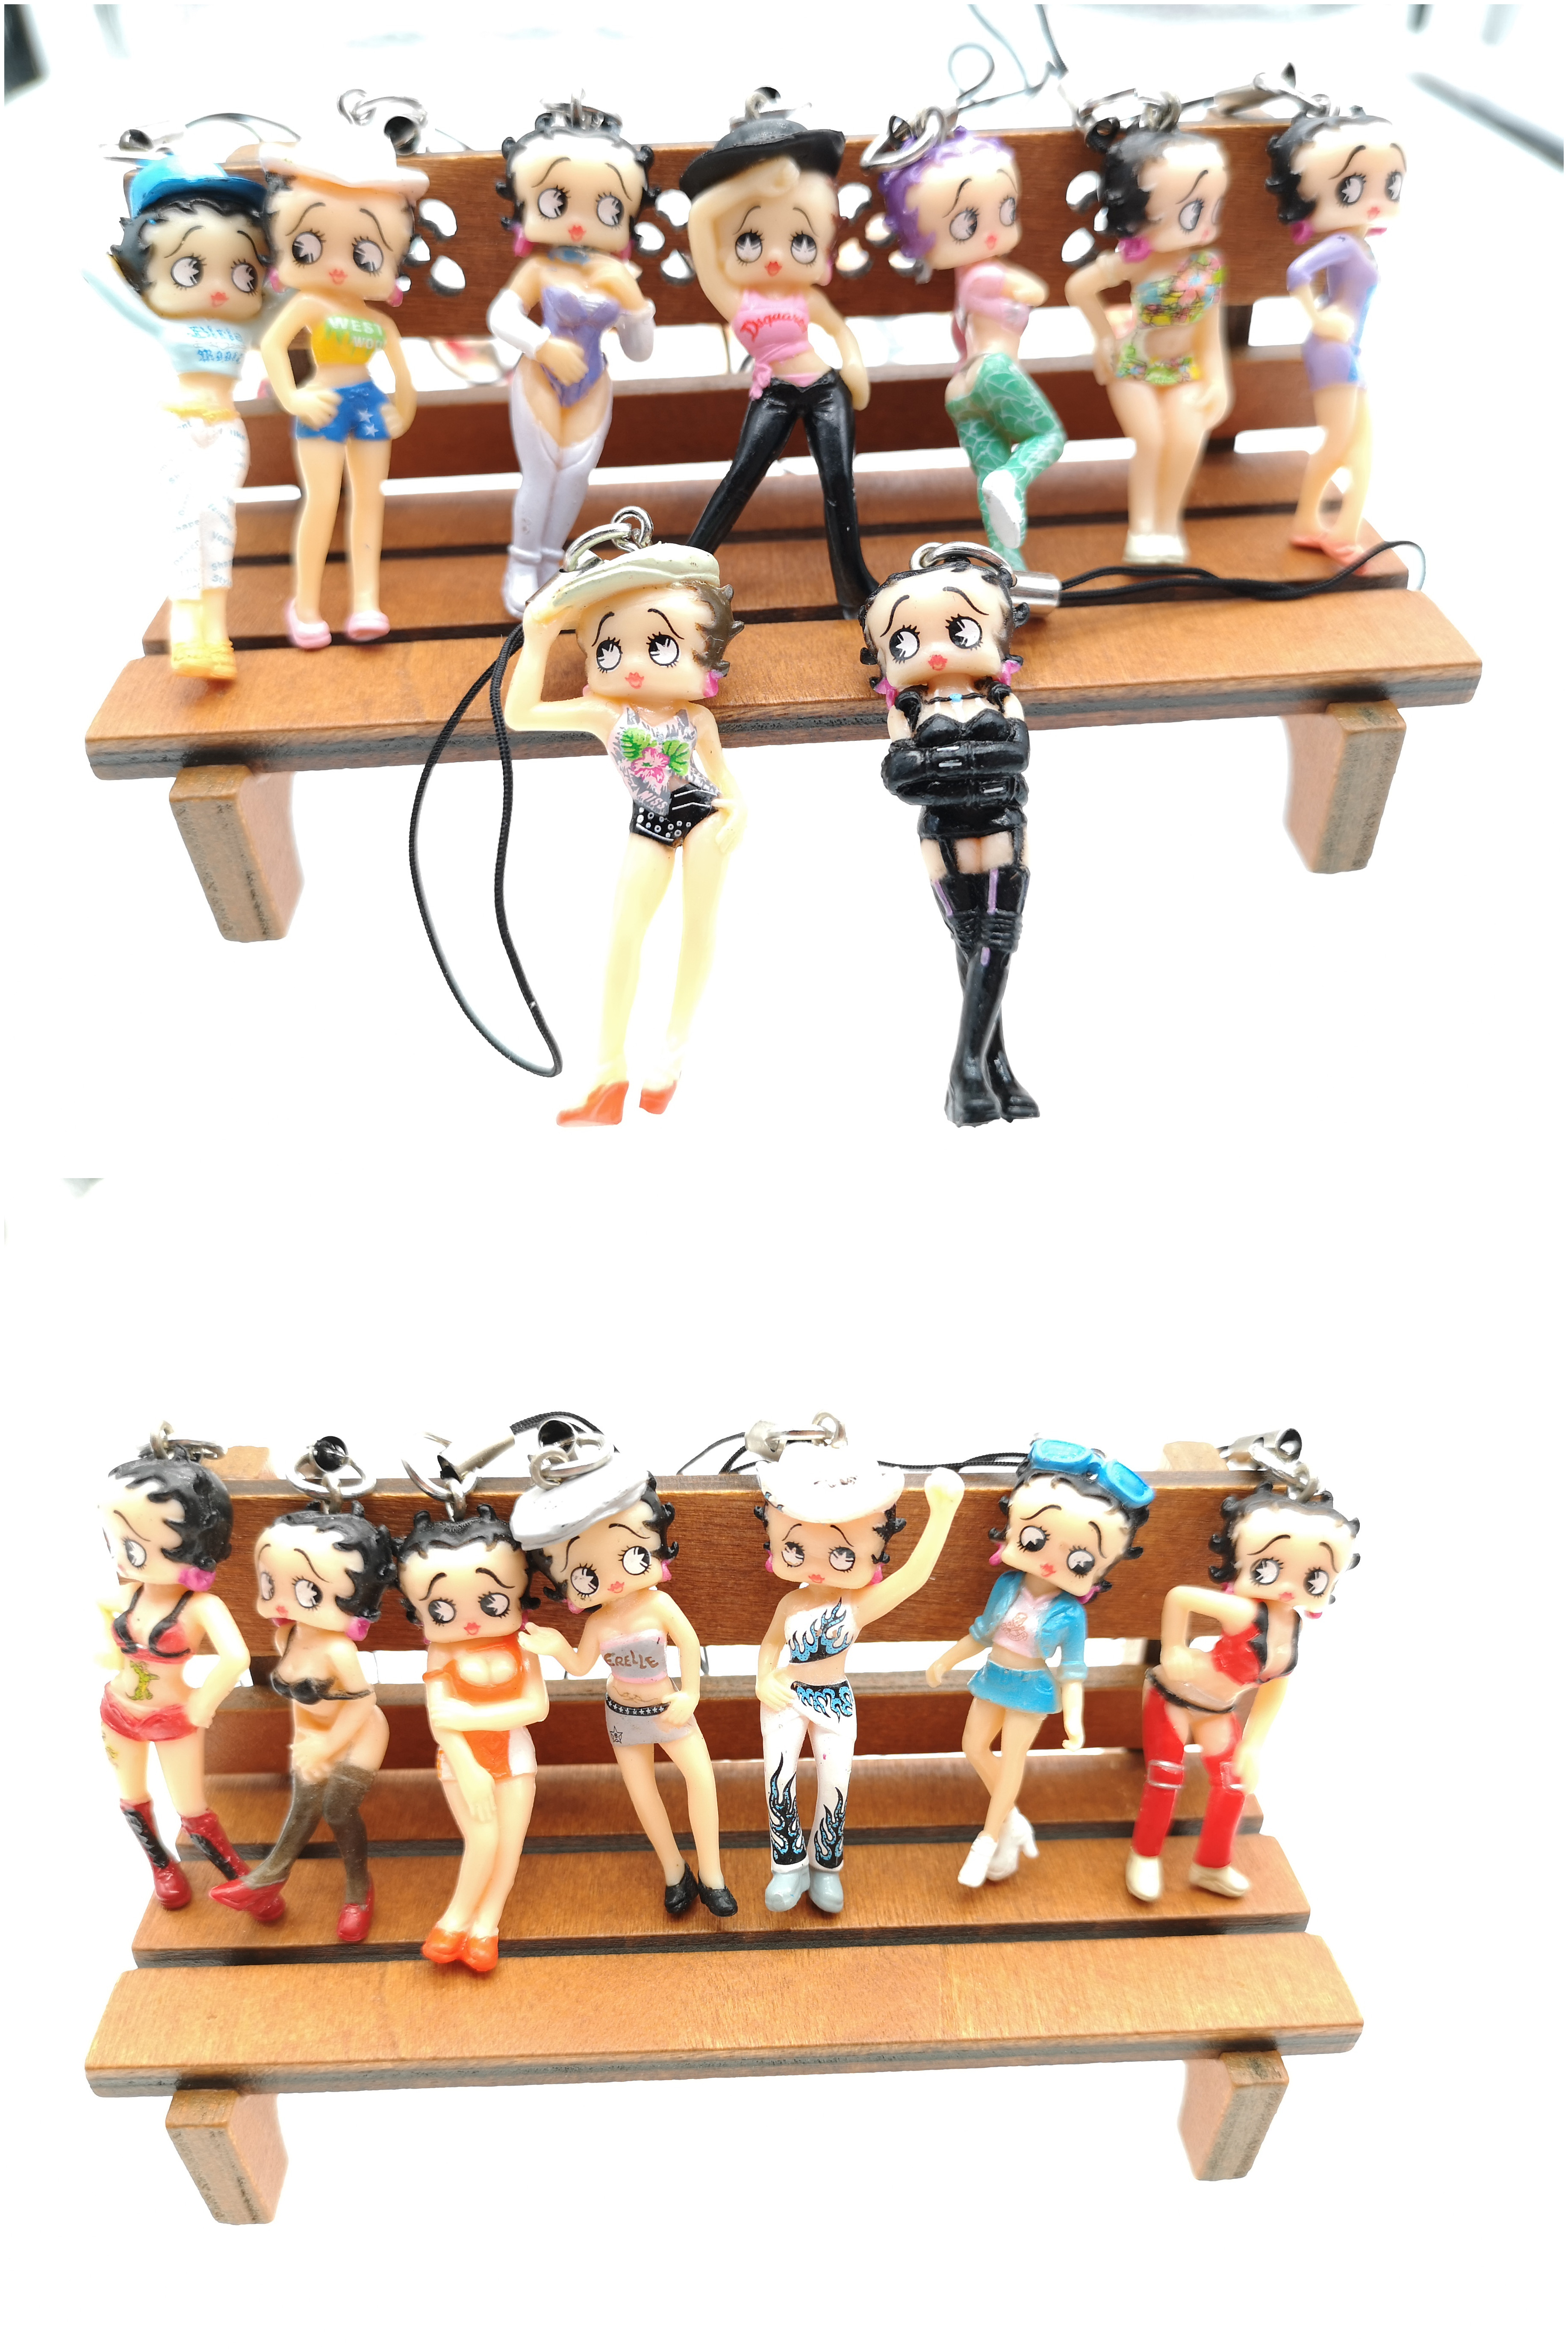 Free Shipping 1 Set 16 Pcs Sexy Color Betty Boop Mixed DIY Figures Mobile Phone Strap Charms Women Kids Gifts